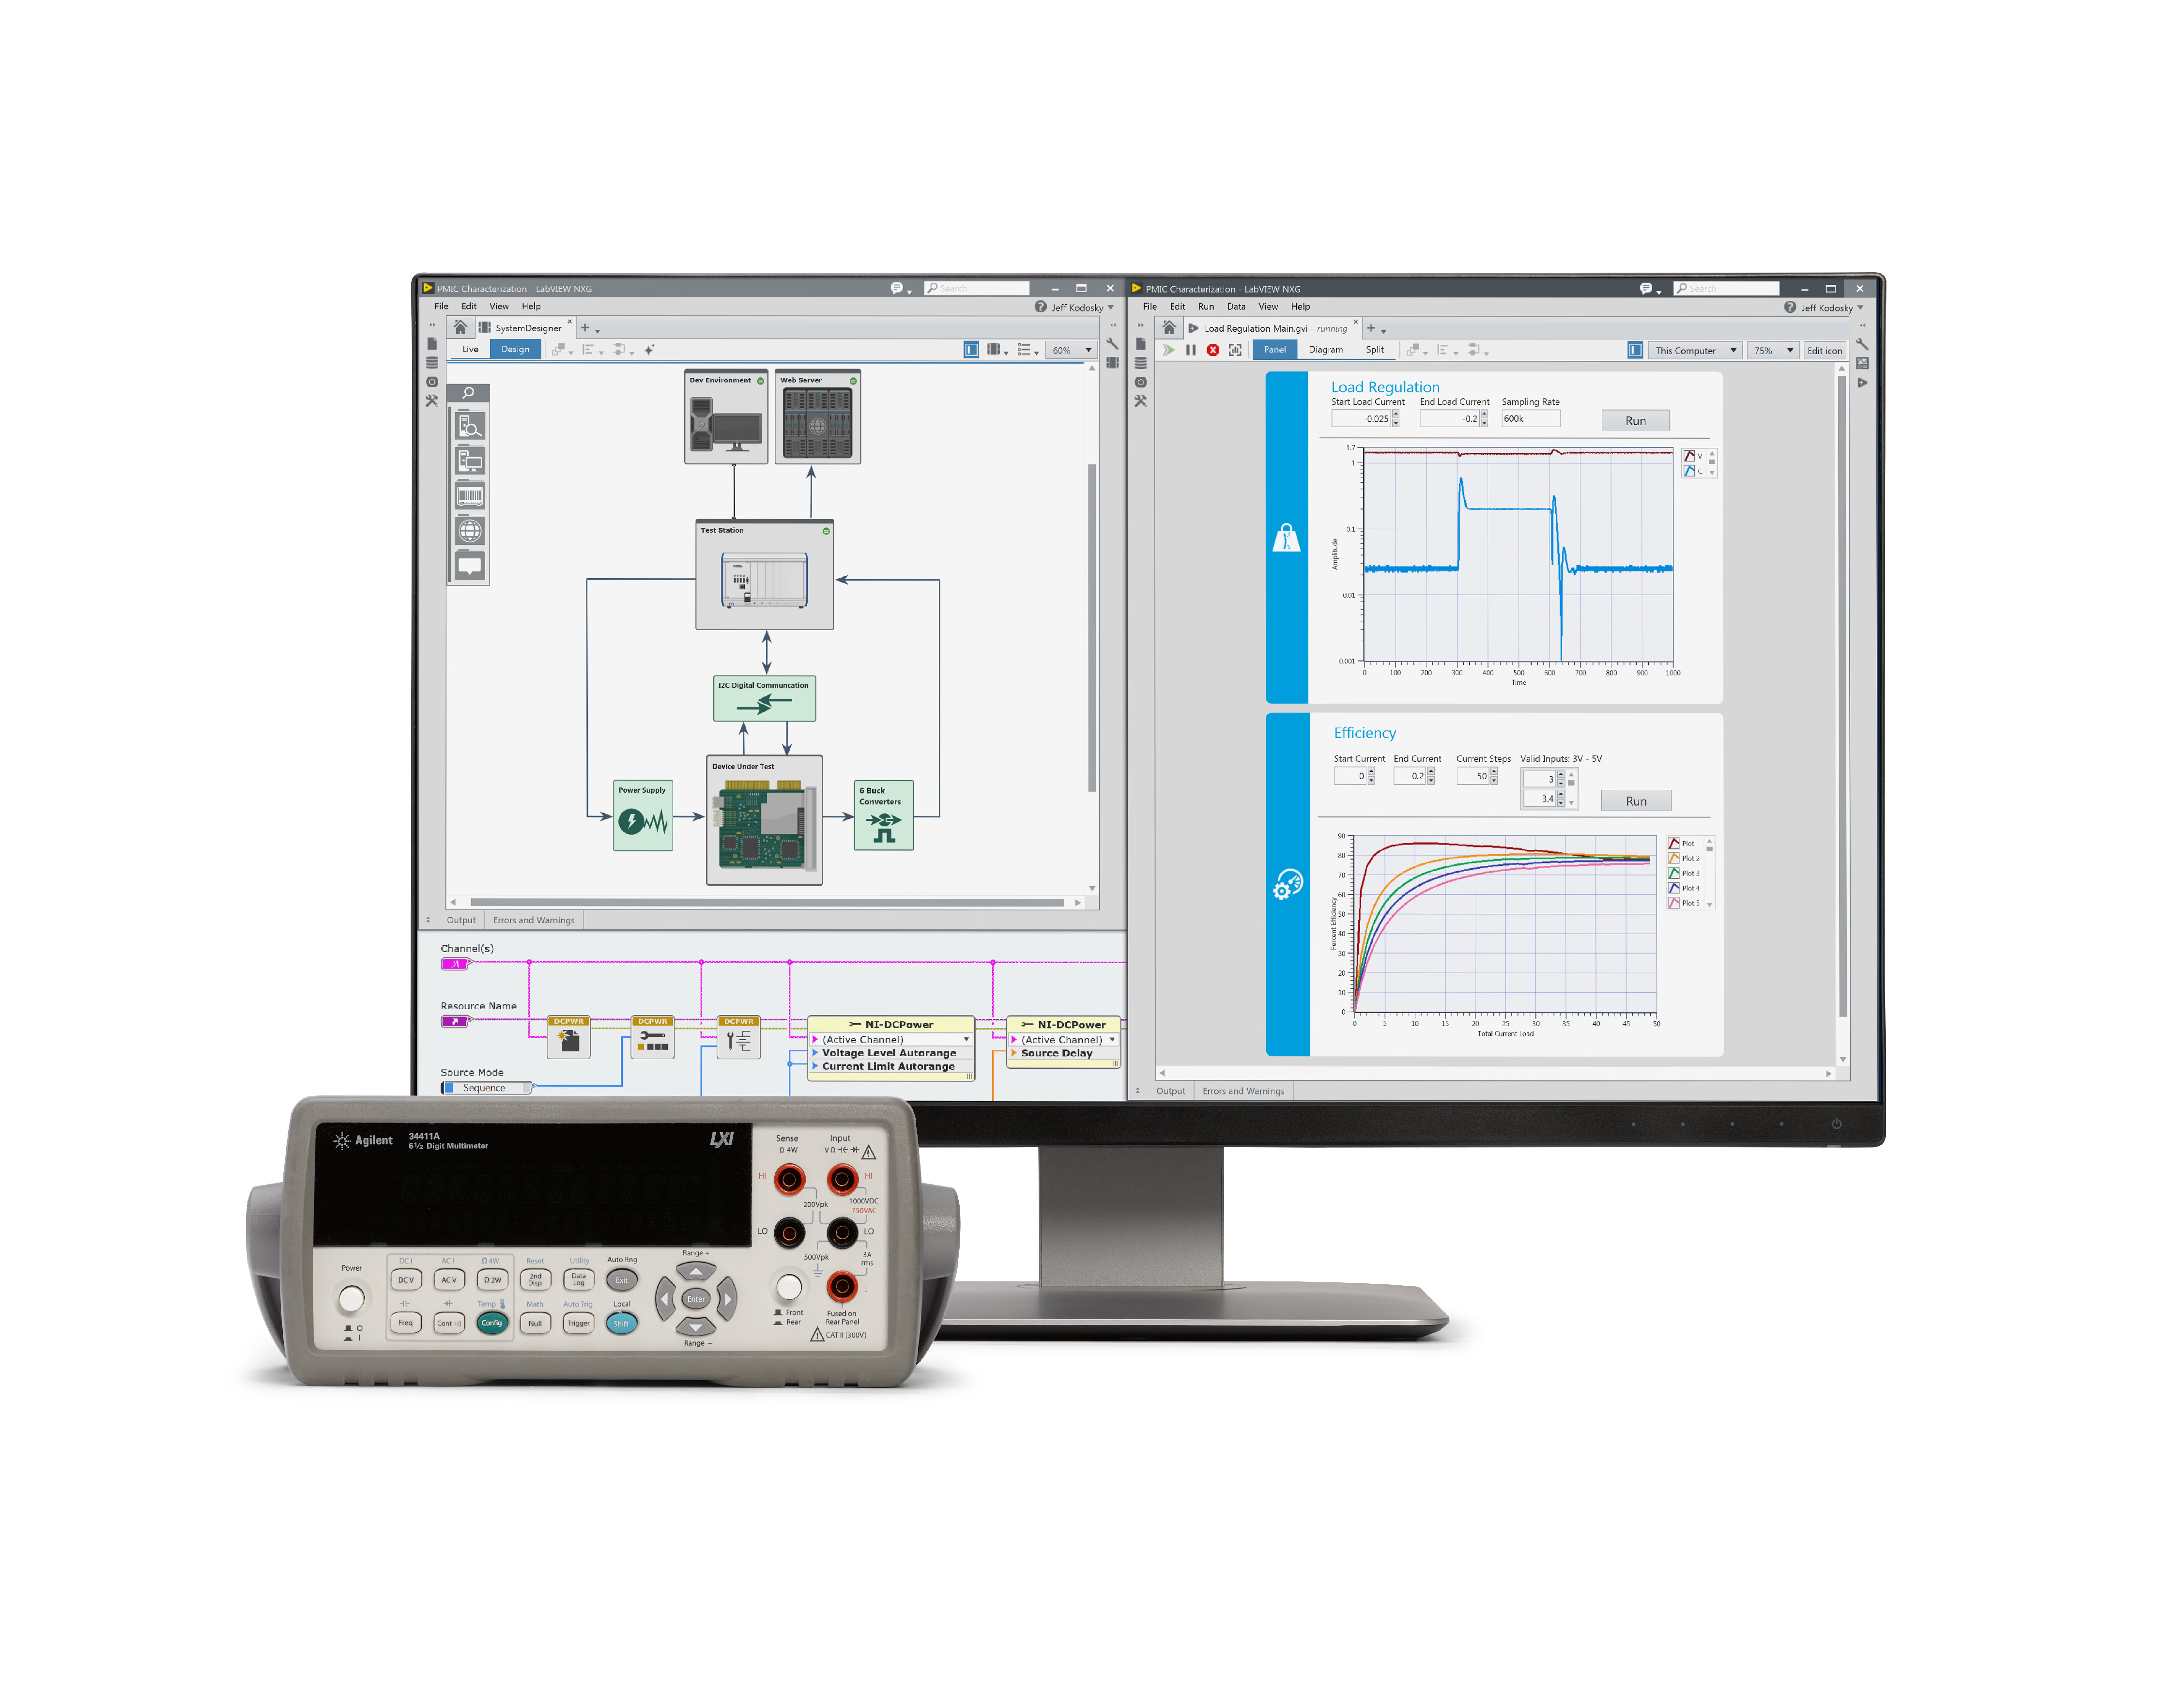 Automate Measurements From Keysight 34400 Series Digital Multimeter Dc Converter Measuring Ac Voltage Labview Nxg Provides An Intuitive Programming Environment For Automating Both Ni And Third Party Instruments